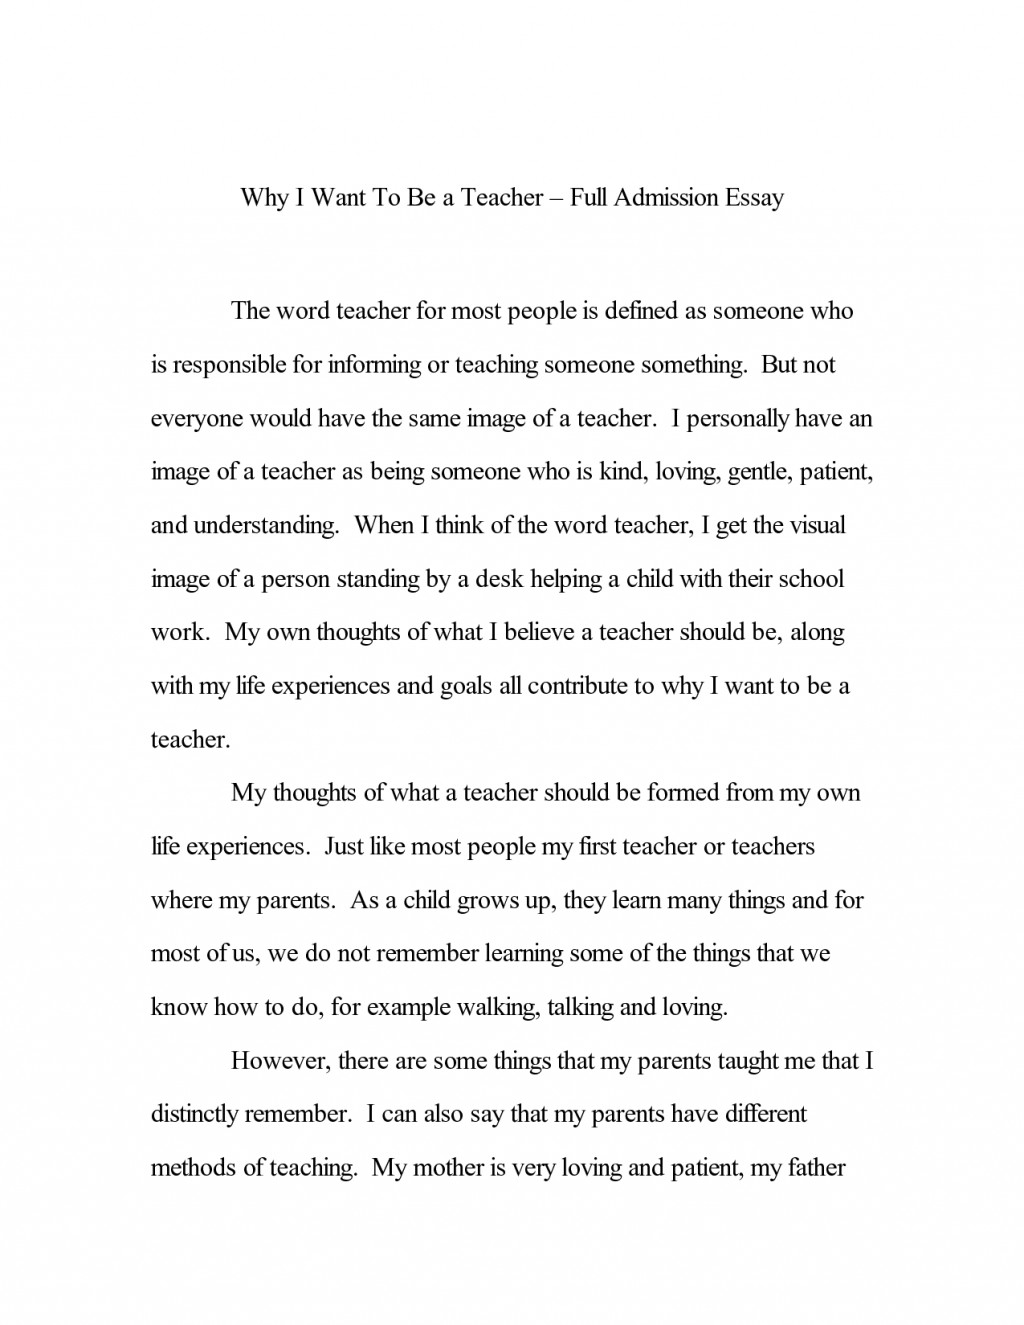 006 Zcwrpapbvx College Entry Essay Amazing Admissions About Autism Application Tips Admission Examples Ivy League Large